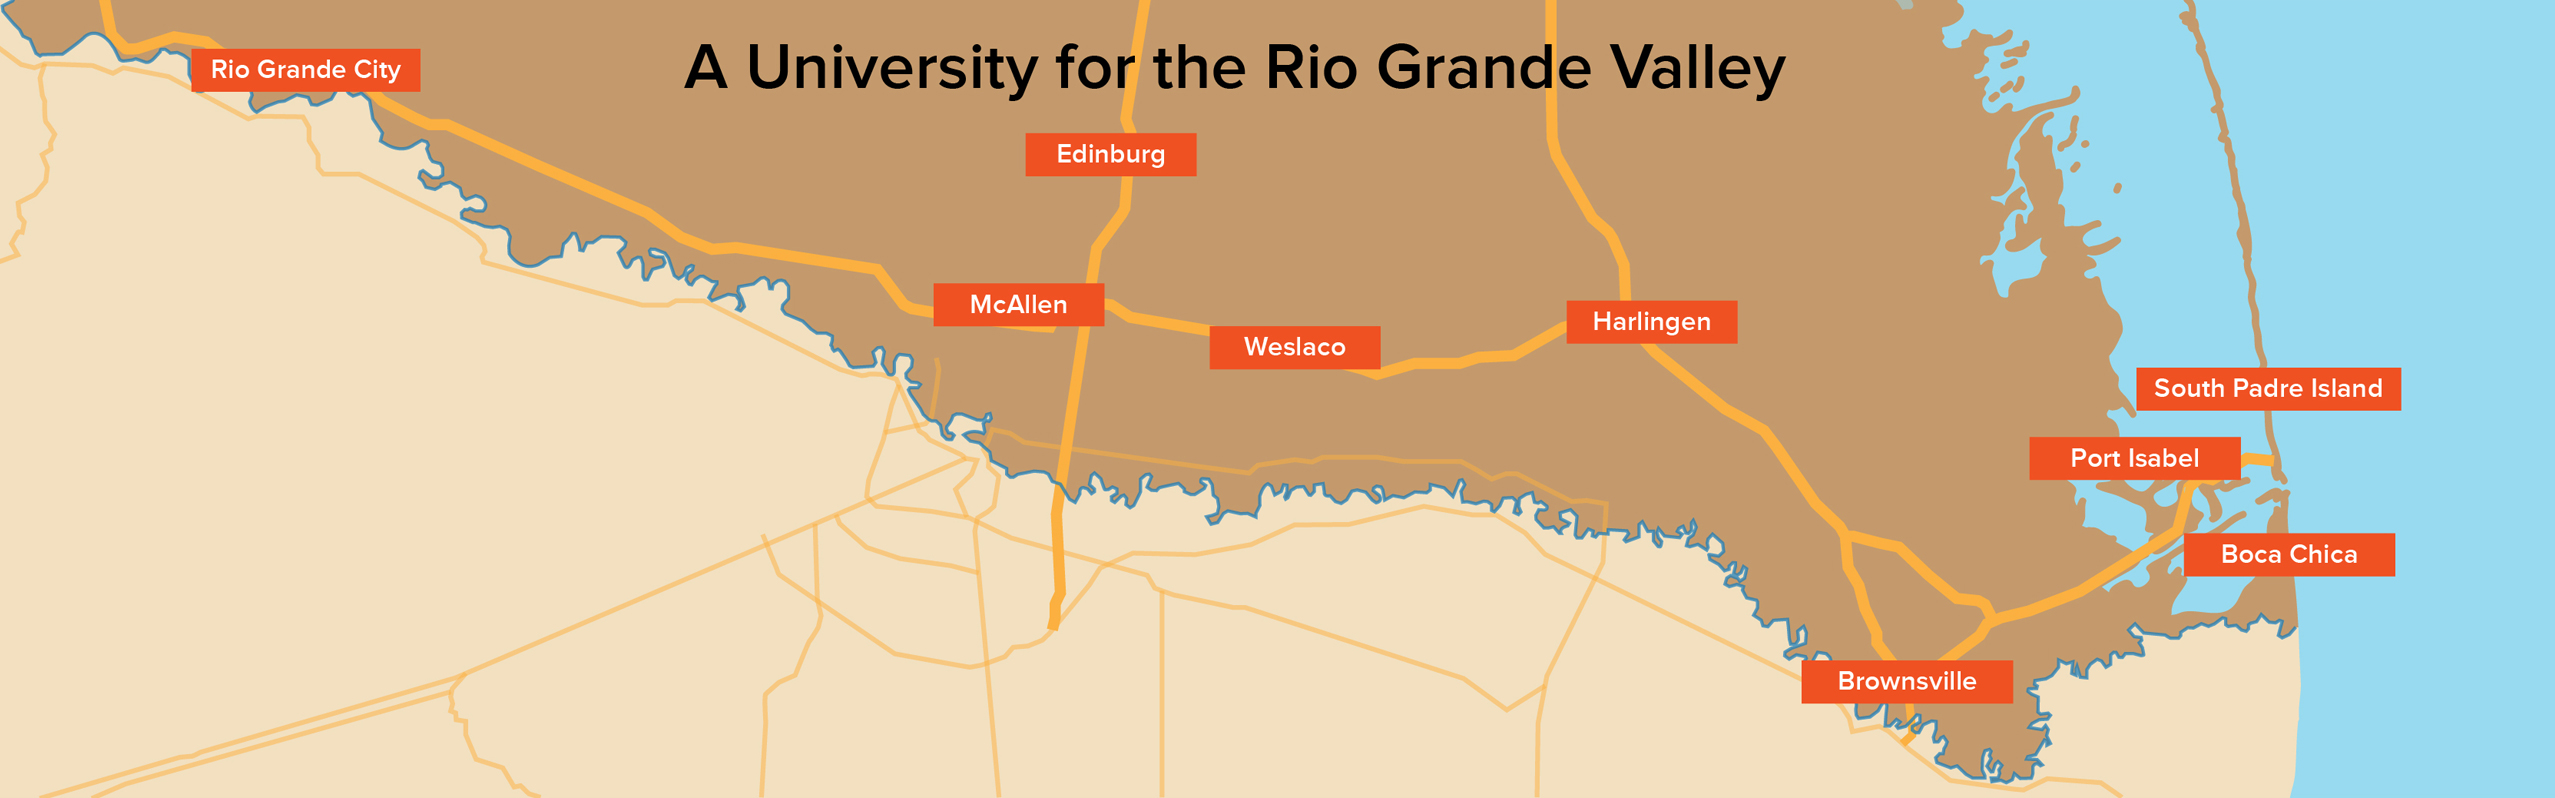 map showing utrgv locations in Edinburg, Brownsville, Halingen, McAllen, Weslaco, Rio Grande City, South Padre Island, Port Isabel, Boca Chica